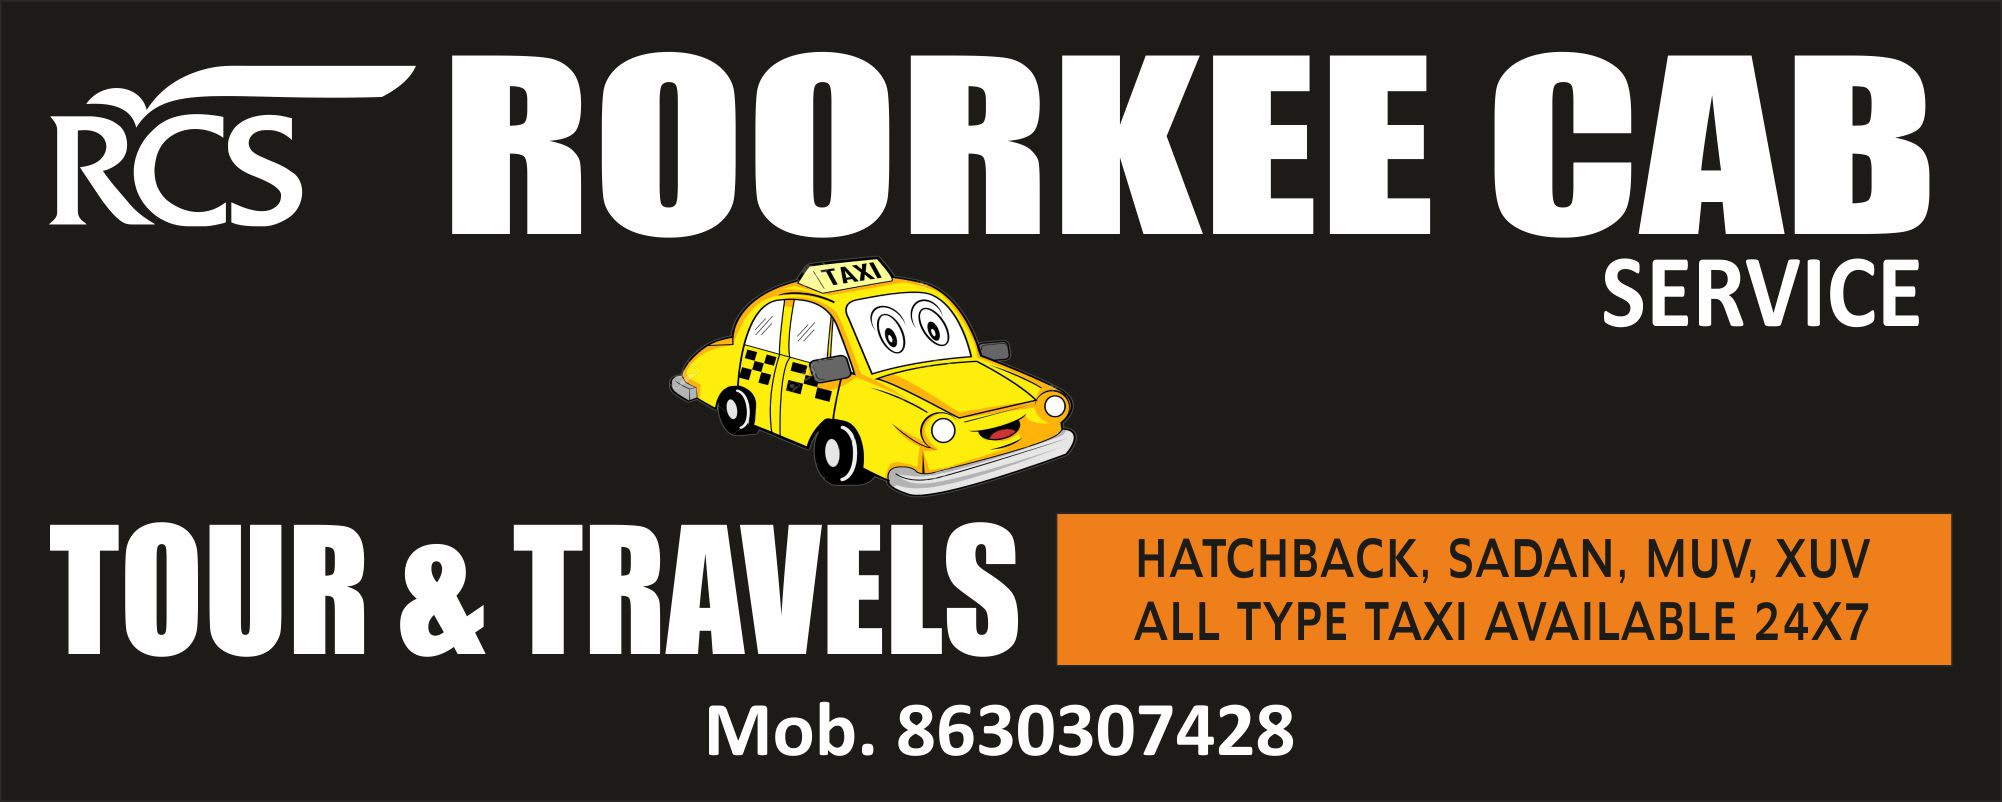 Roorkee Cab Service